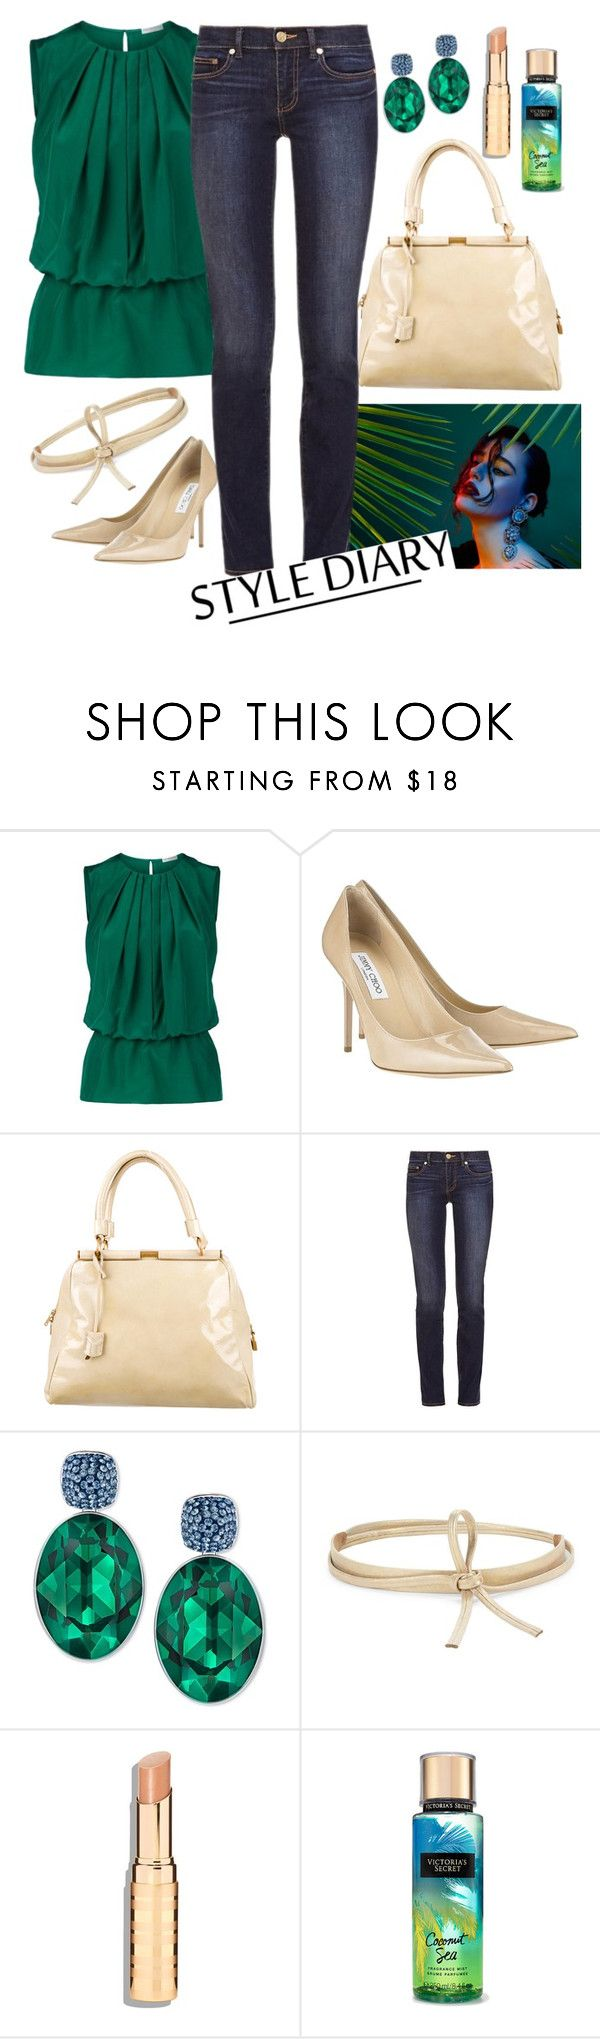 """drinks."" by la-chile ❤ liked on Polyvore featuring Emilio Pucci, Jimmy Choo, Yves Saint Laurent, Tory Burch, Swarovski and Ada"